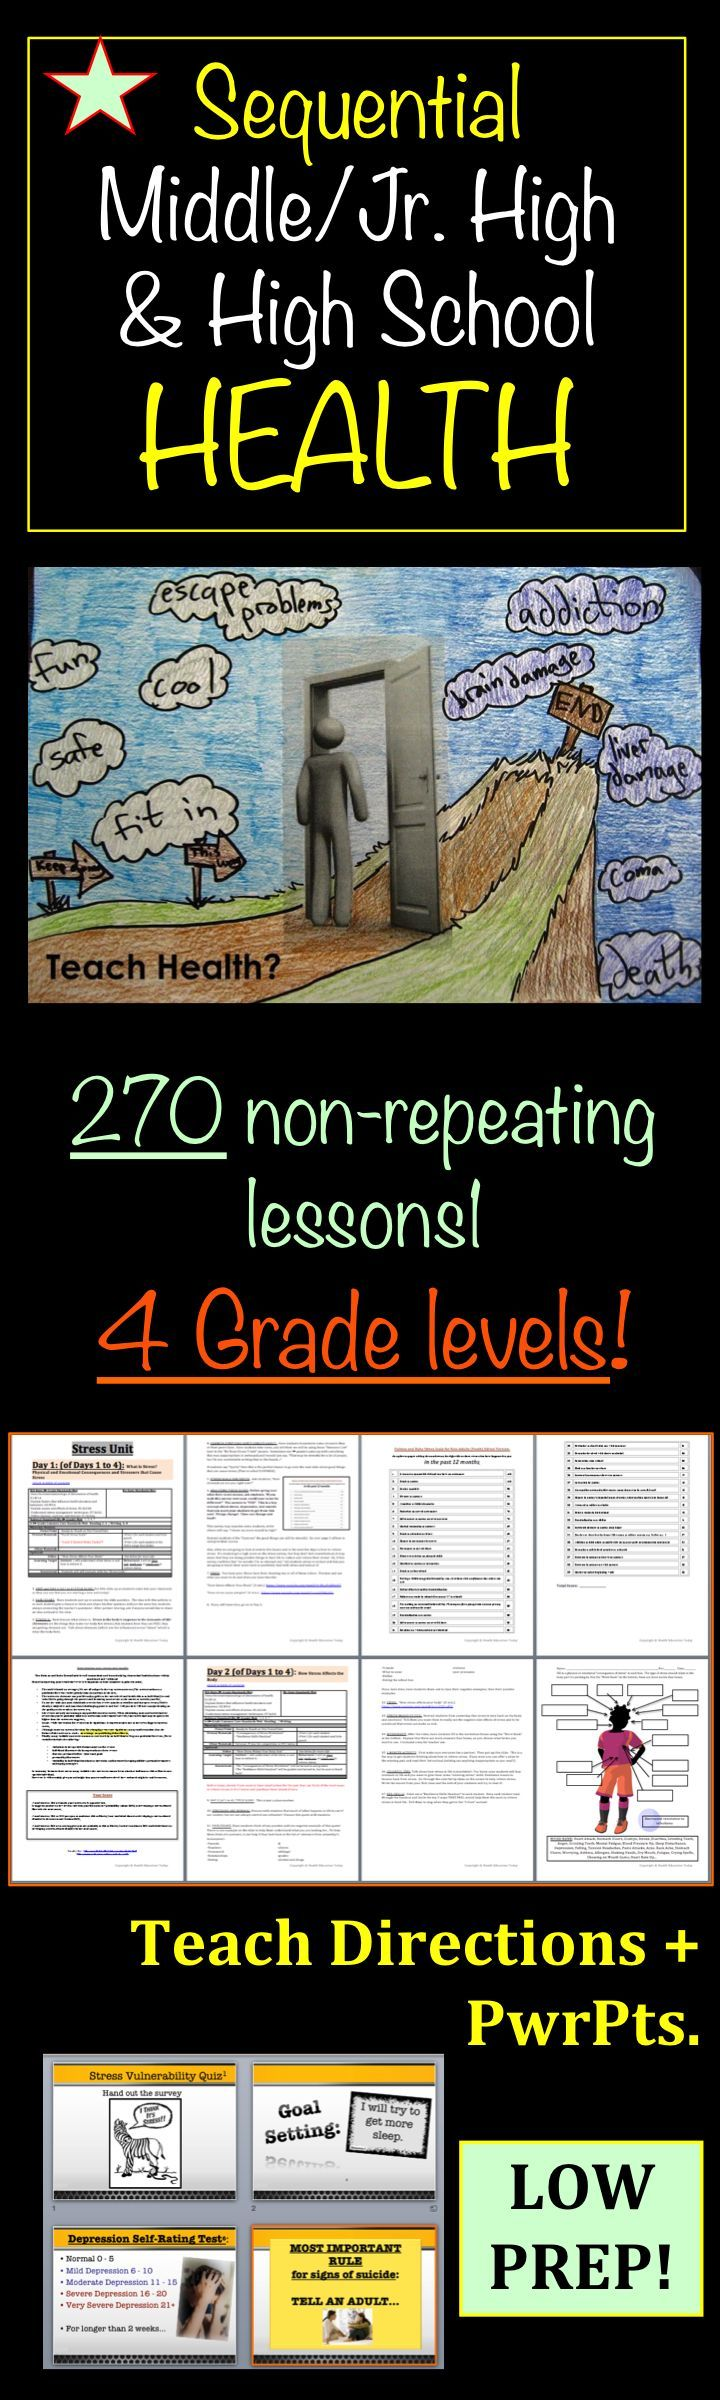 Middle/Jr. High AND High School Sequential Health